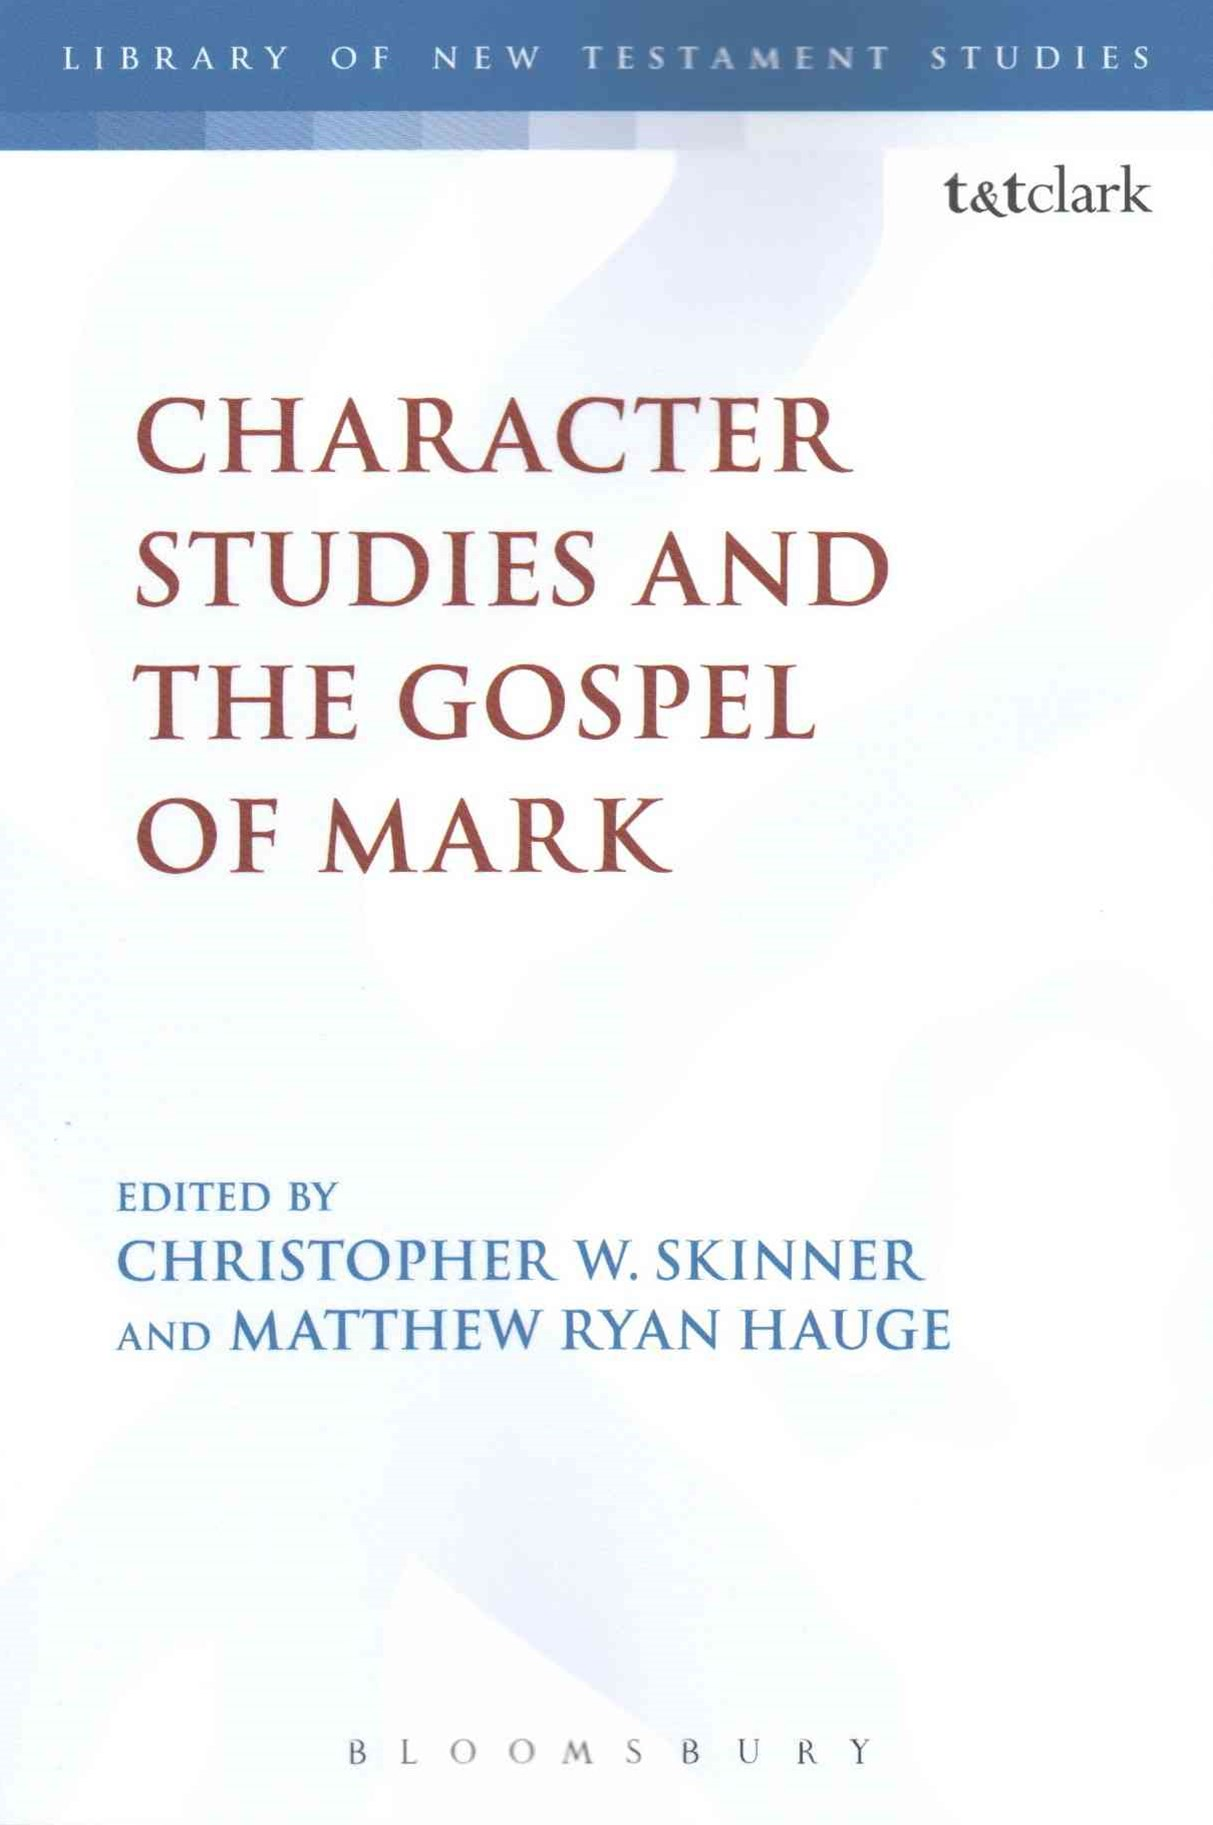 Character Studies and the Gospel of Mark